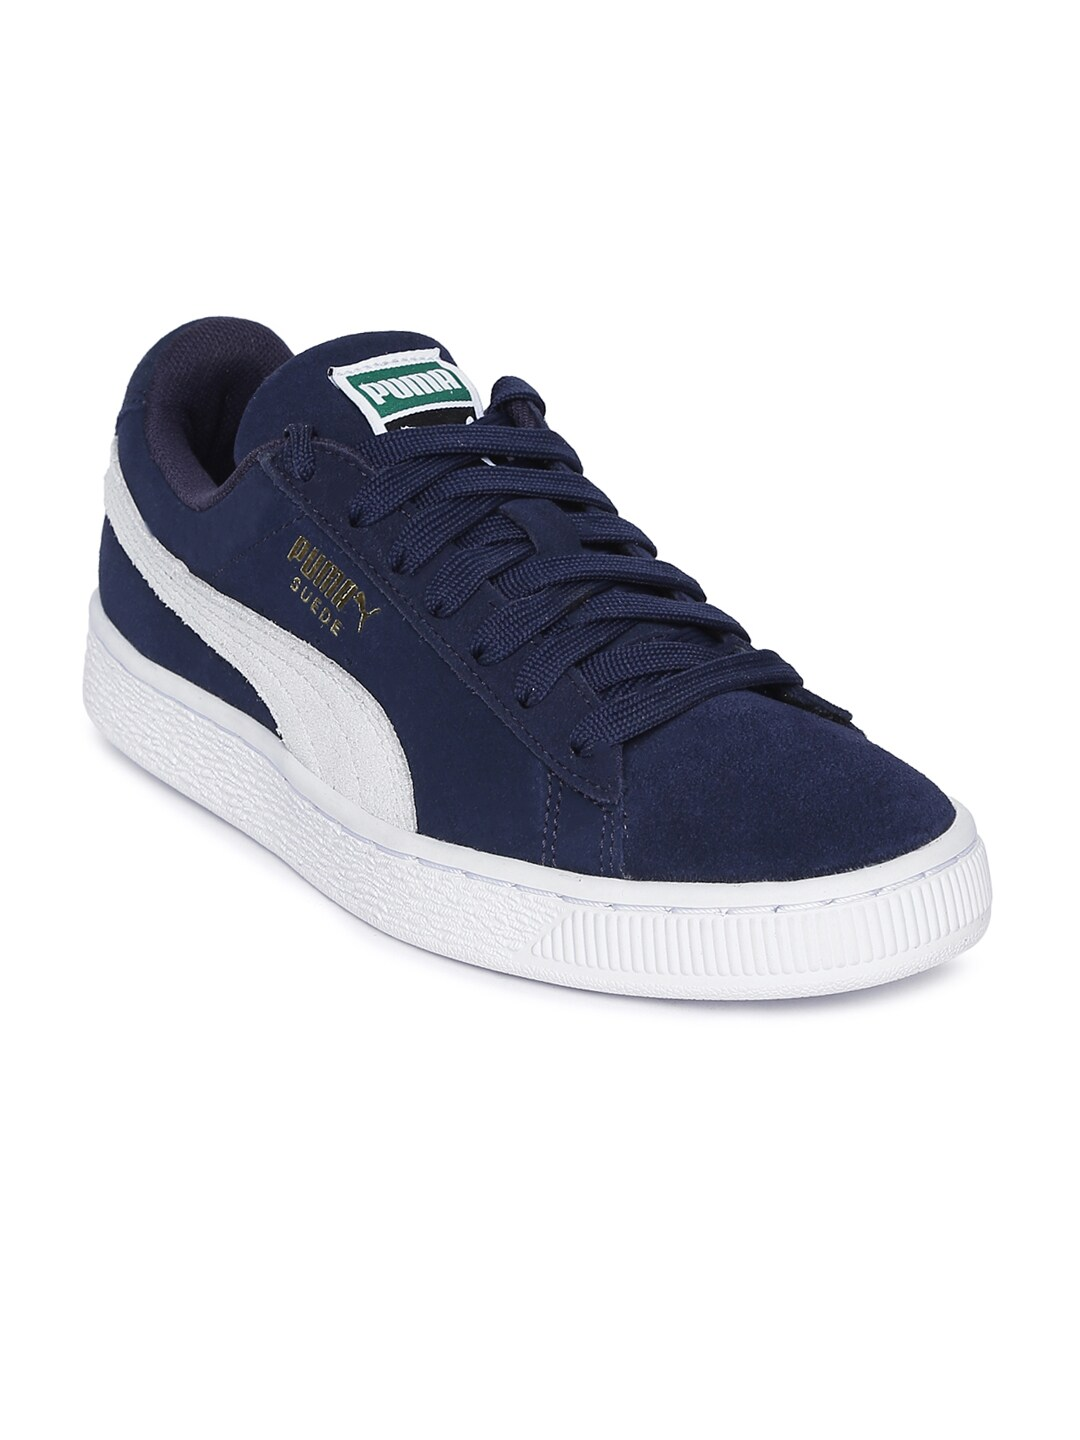 outlet store c2ead 515a7 Puma Unisex Navy Blue Suede Classic + Sneakers